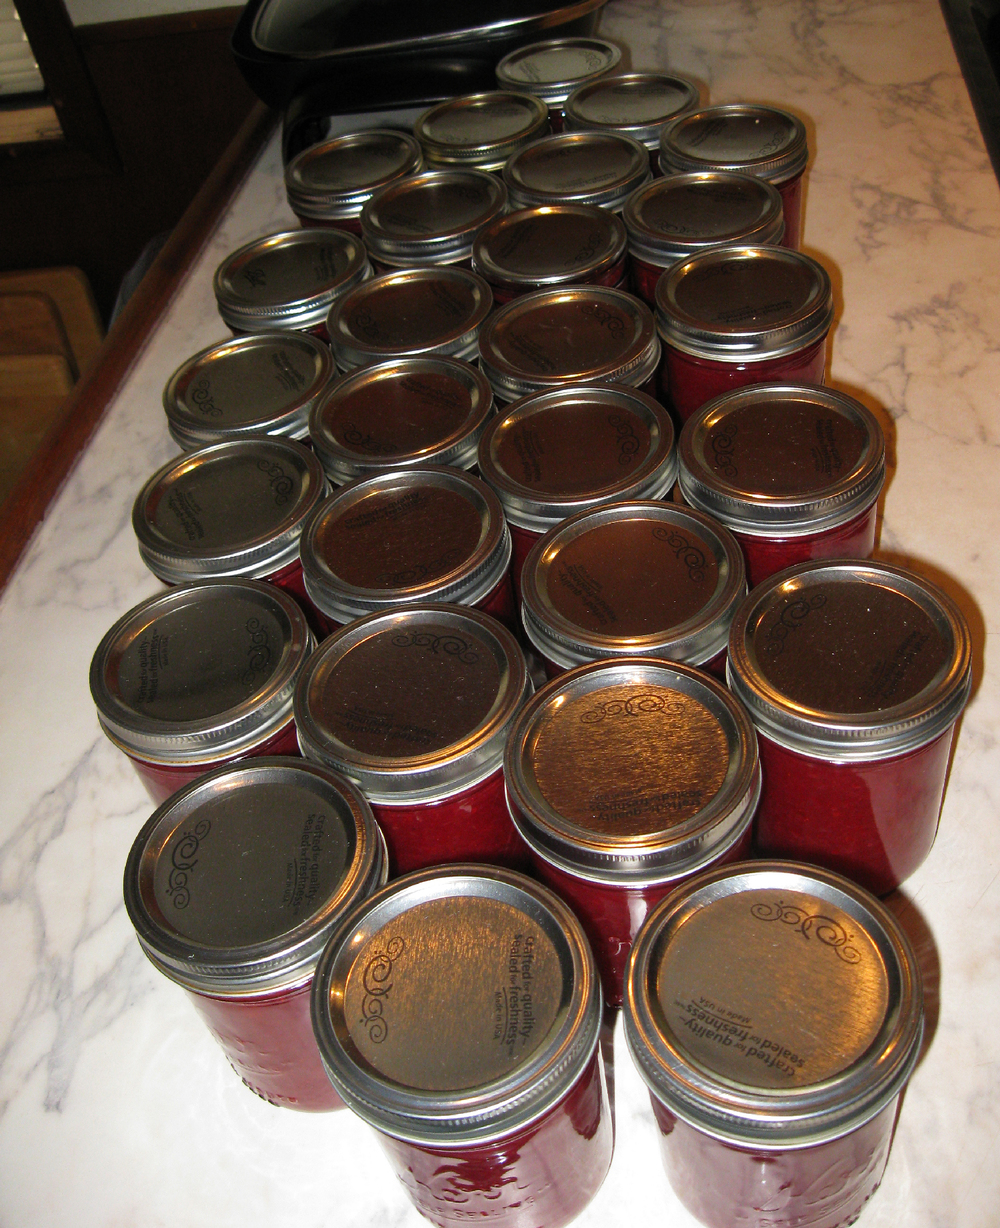 Red huckleberry jam ready for labeling. I thank my wonderful sweetheart for preserving this goodness in jars.